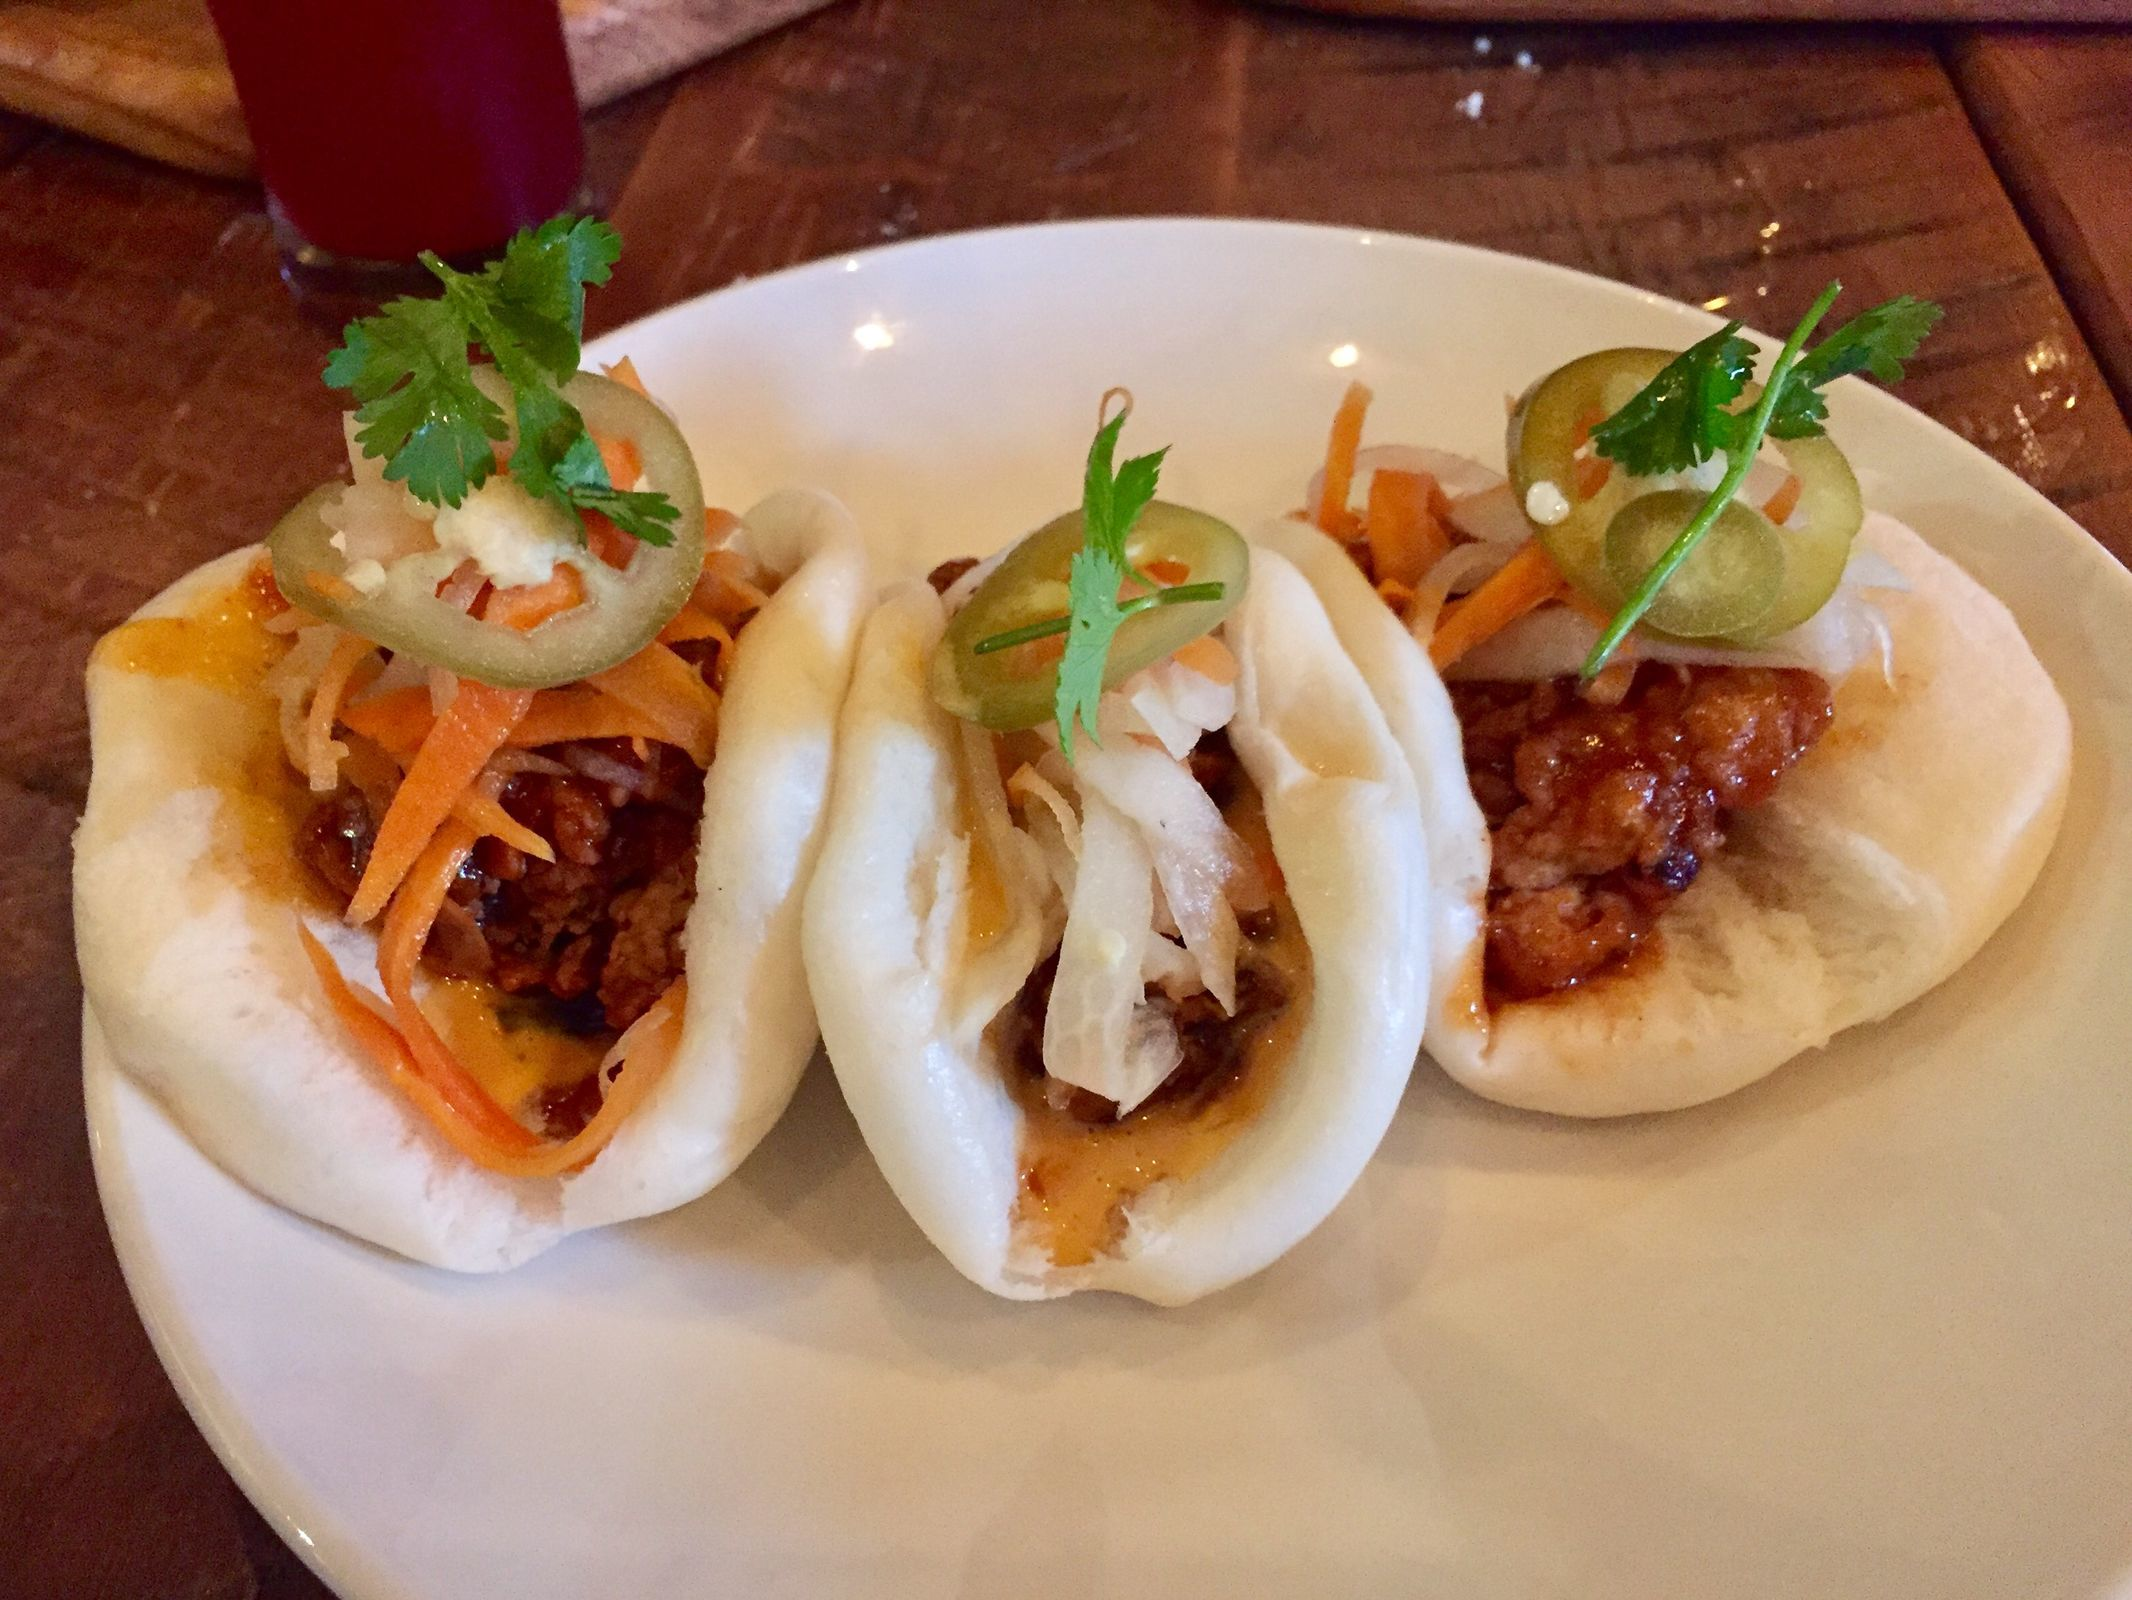 Fried chicken bao buns from Borough Brewhouse. (CRAIG LABAN / Staff)